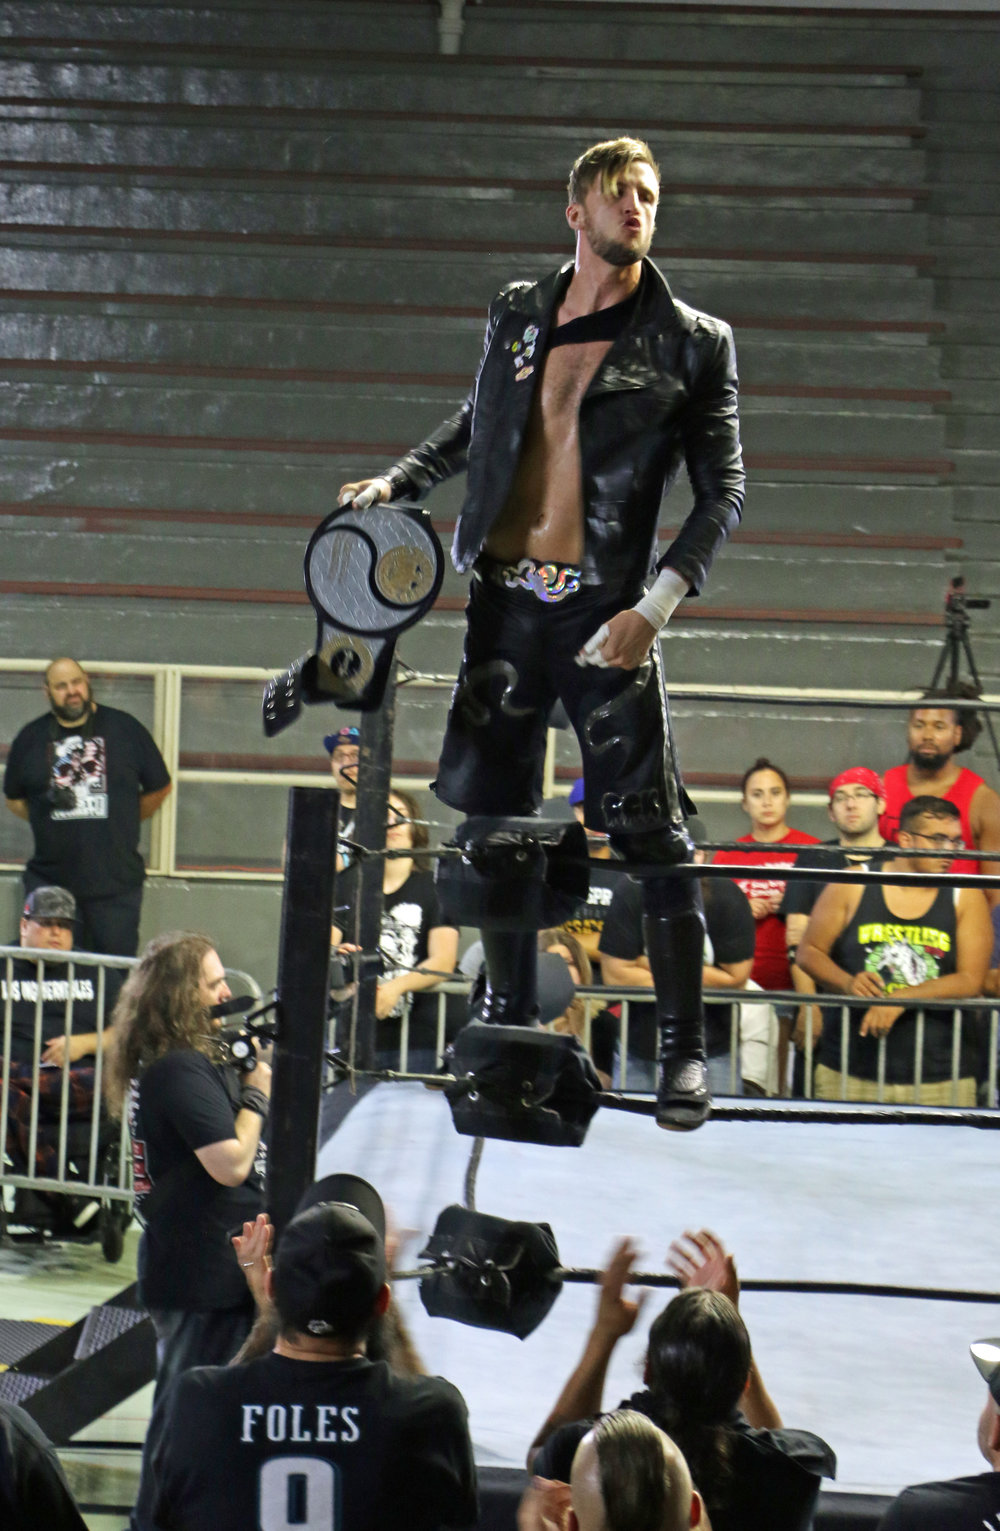 Chris Brookes, co-holder of the PROGRESS Tag Team Championship, poses for the fans before the match.